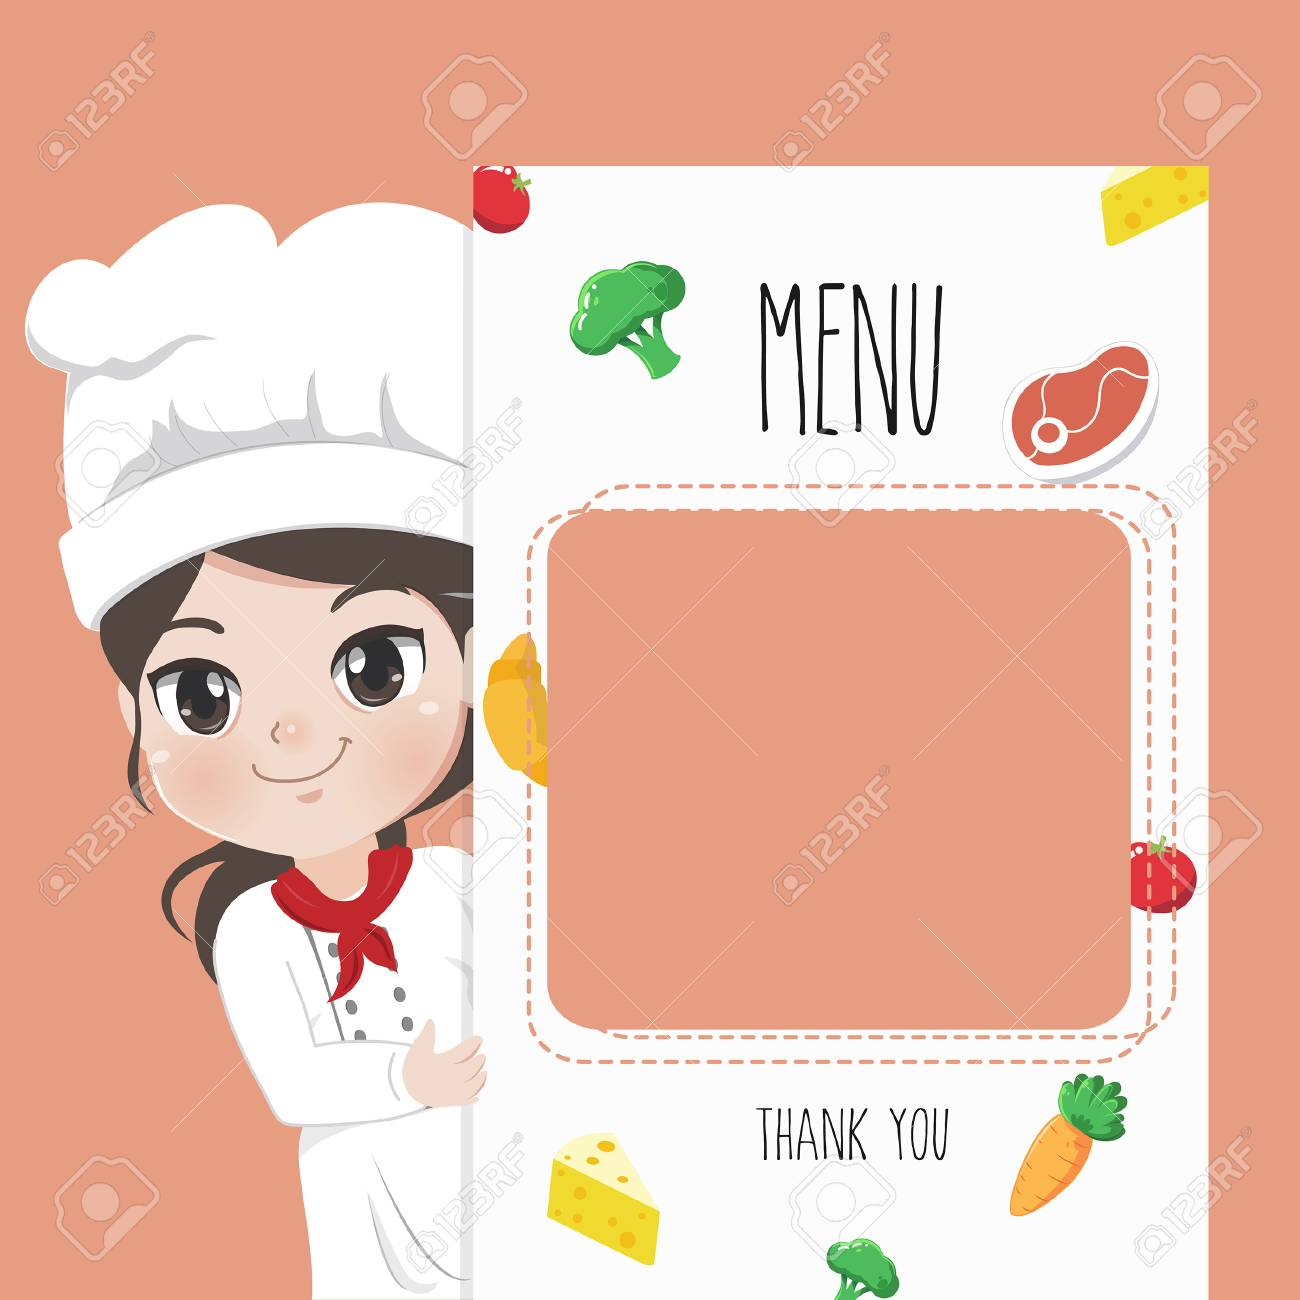 Female chef recommends food menu. She is happy to have customers enjoy delicious food. - 123424524